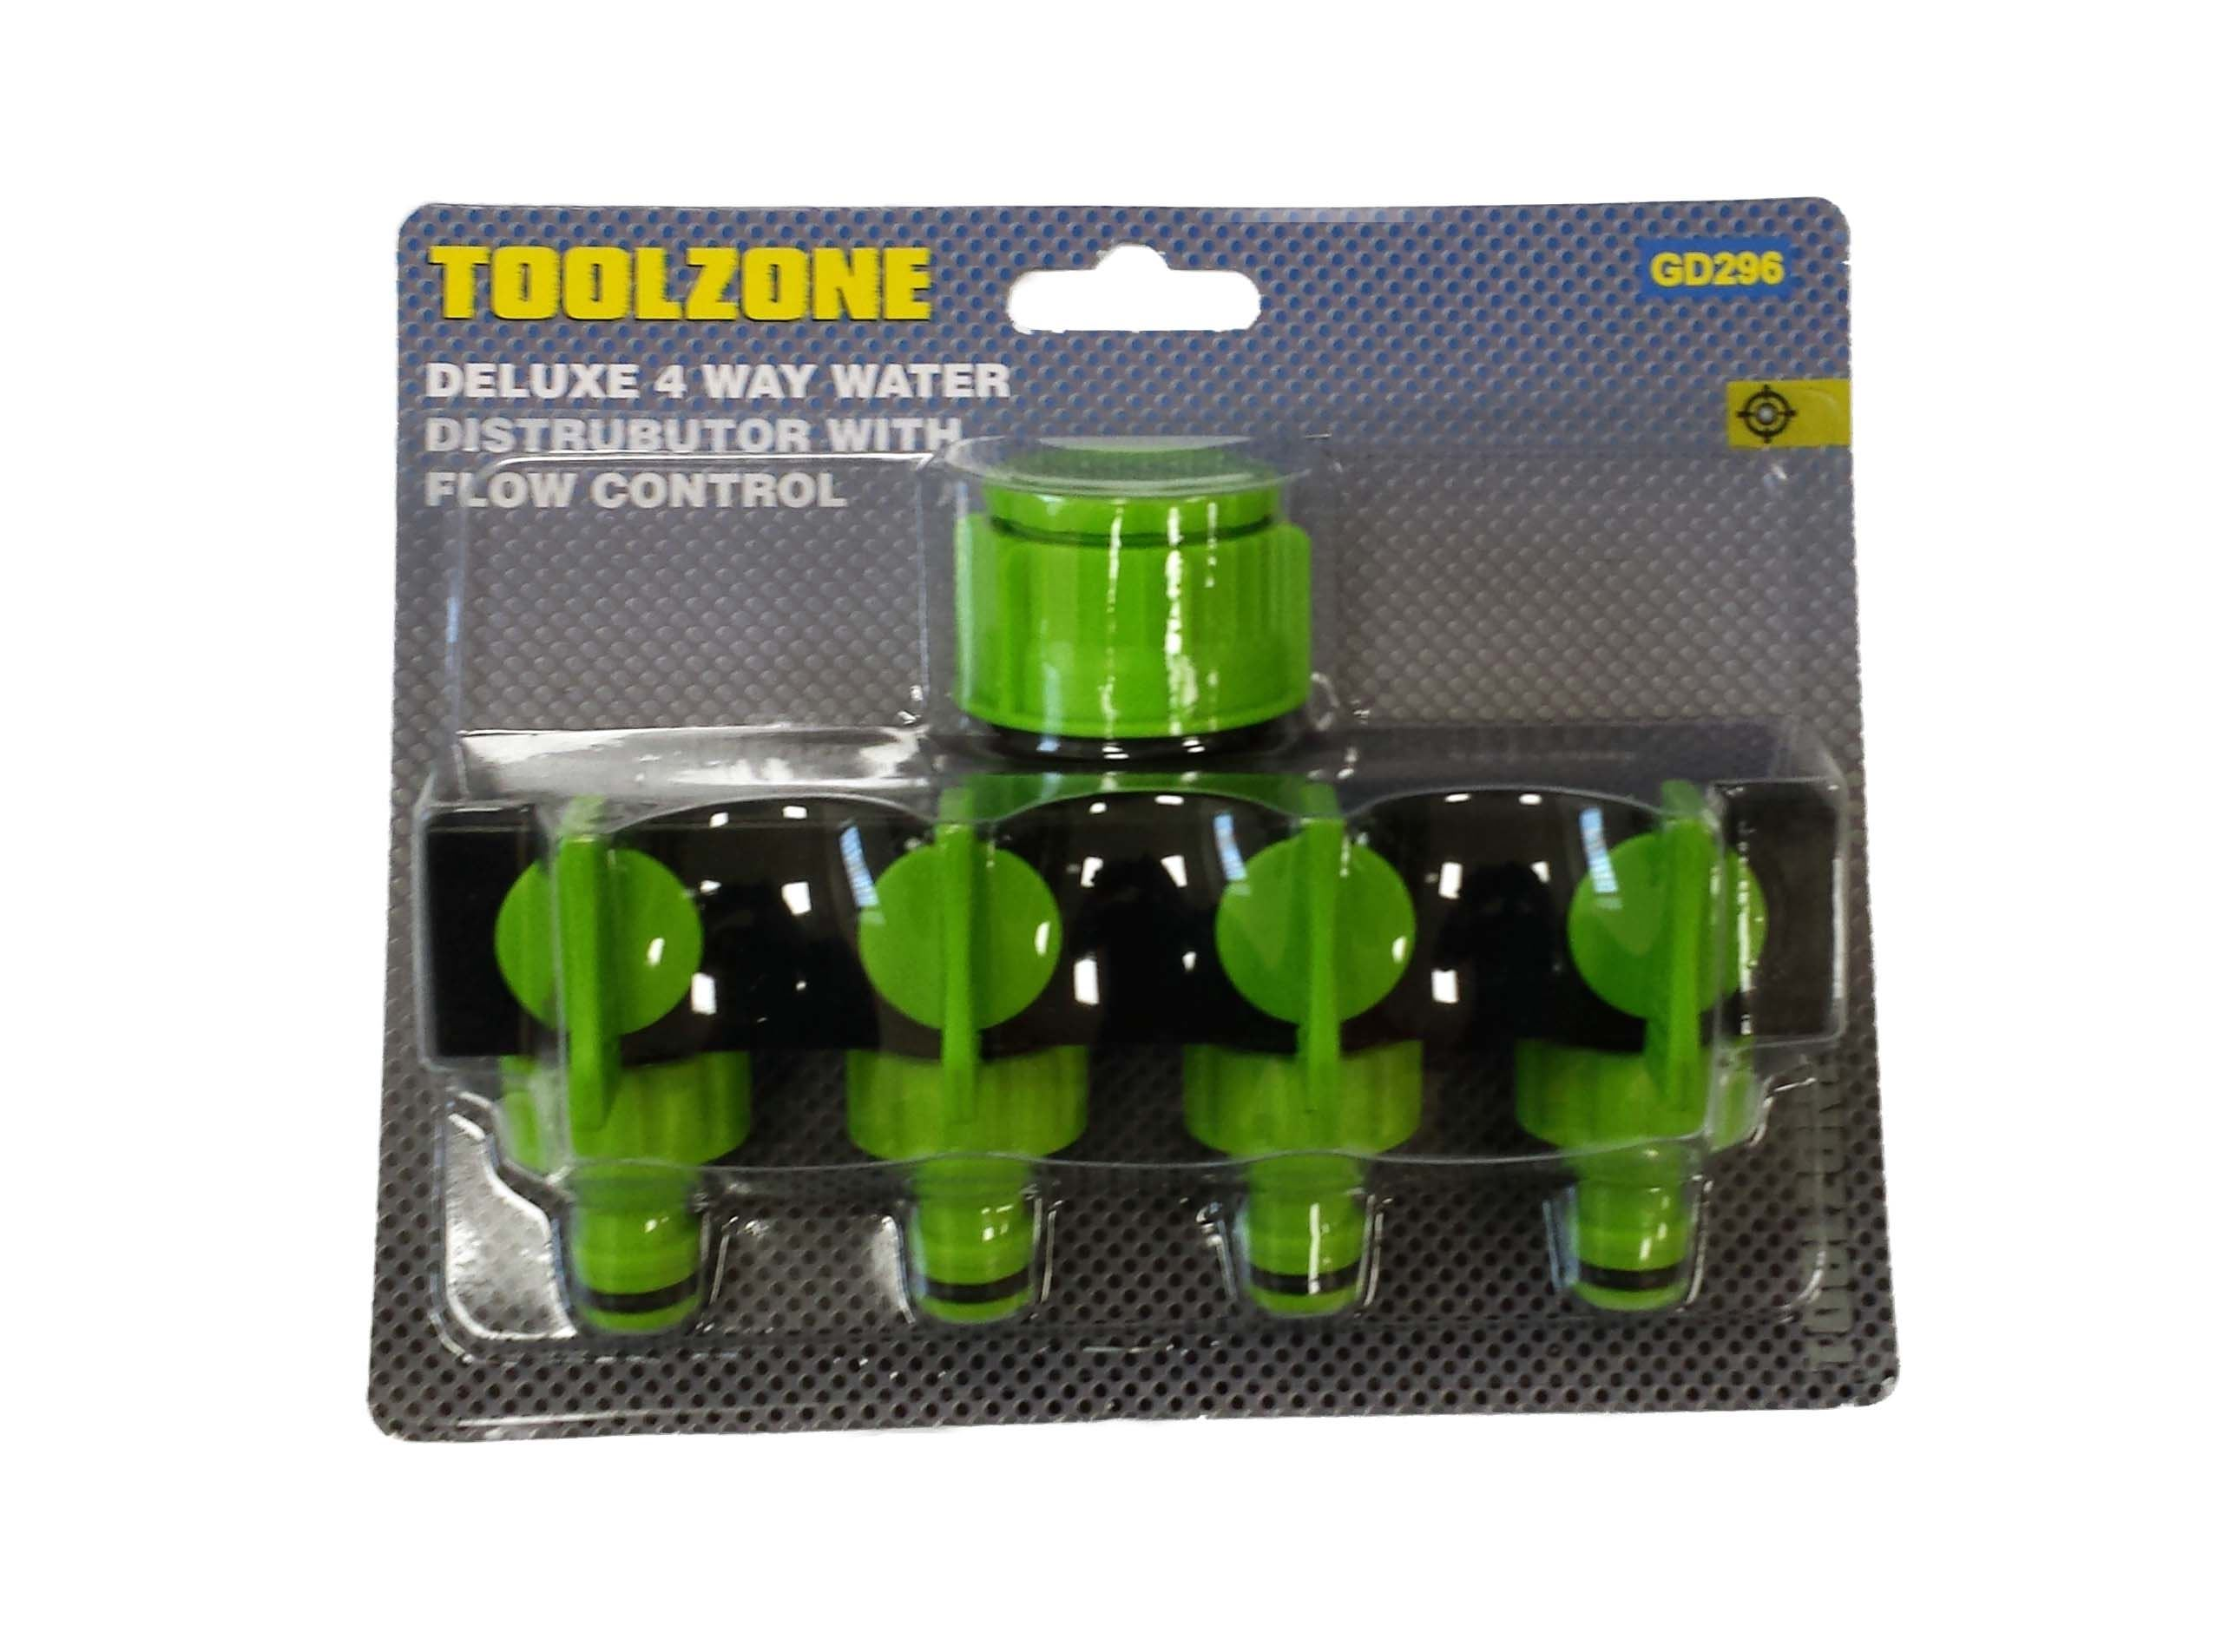 Toolzone Deluxe 4 Way Water Distributor